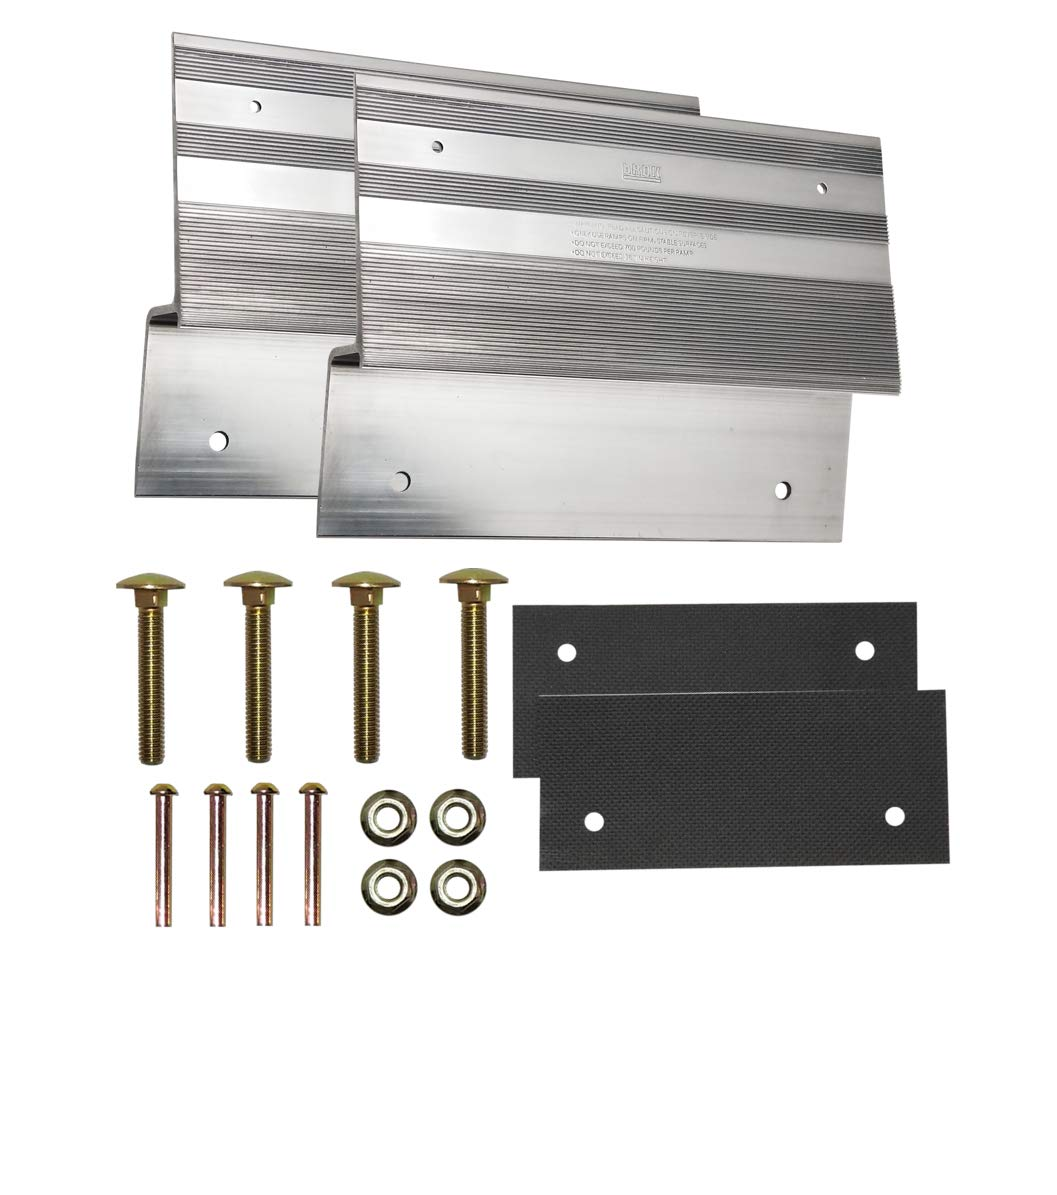 bROK 12'' Aluminum Ramp Kit for 2'' x 12'' Planks with Full Width scratchproof Pads. Create Universal Wood Plank ramps to Load and unload Lawn Tractors, ATVs, dolleys, and wheelbarrows by bROK